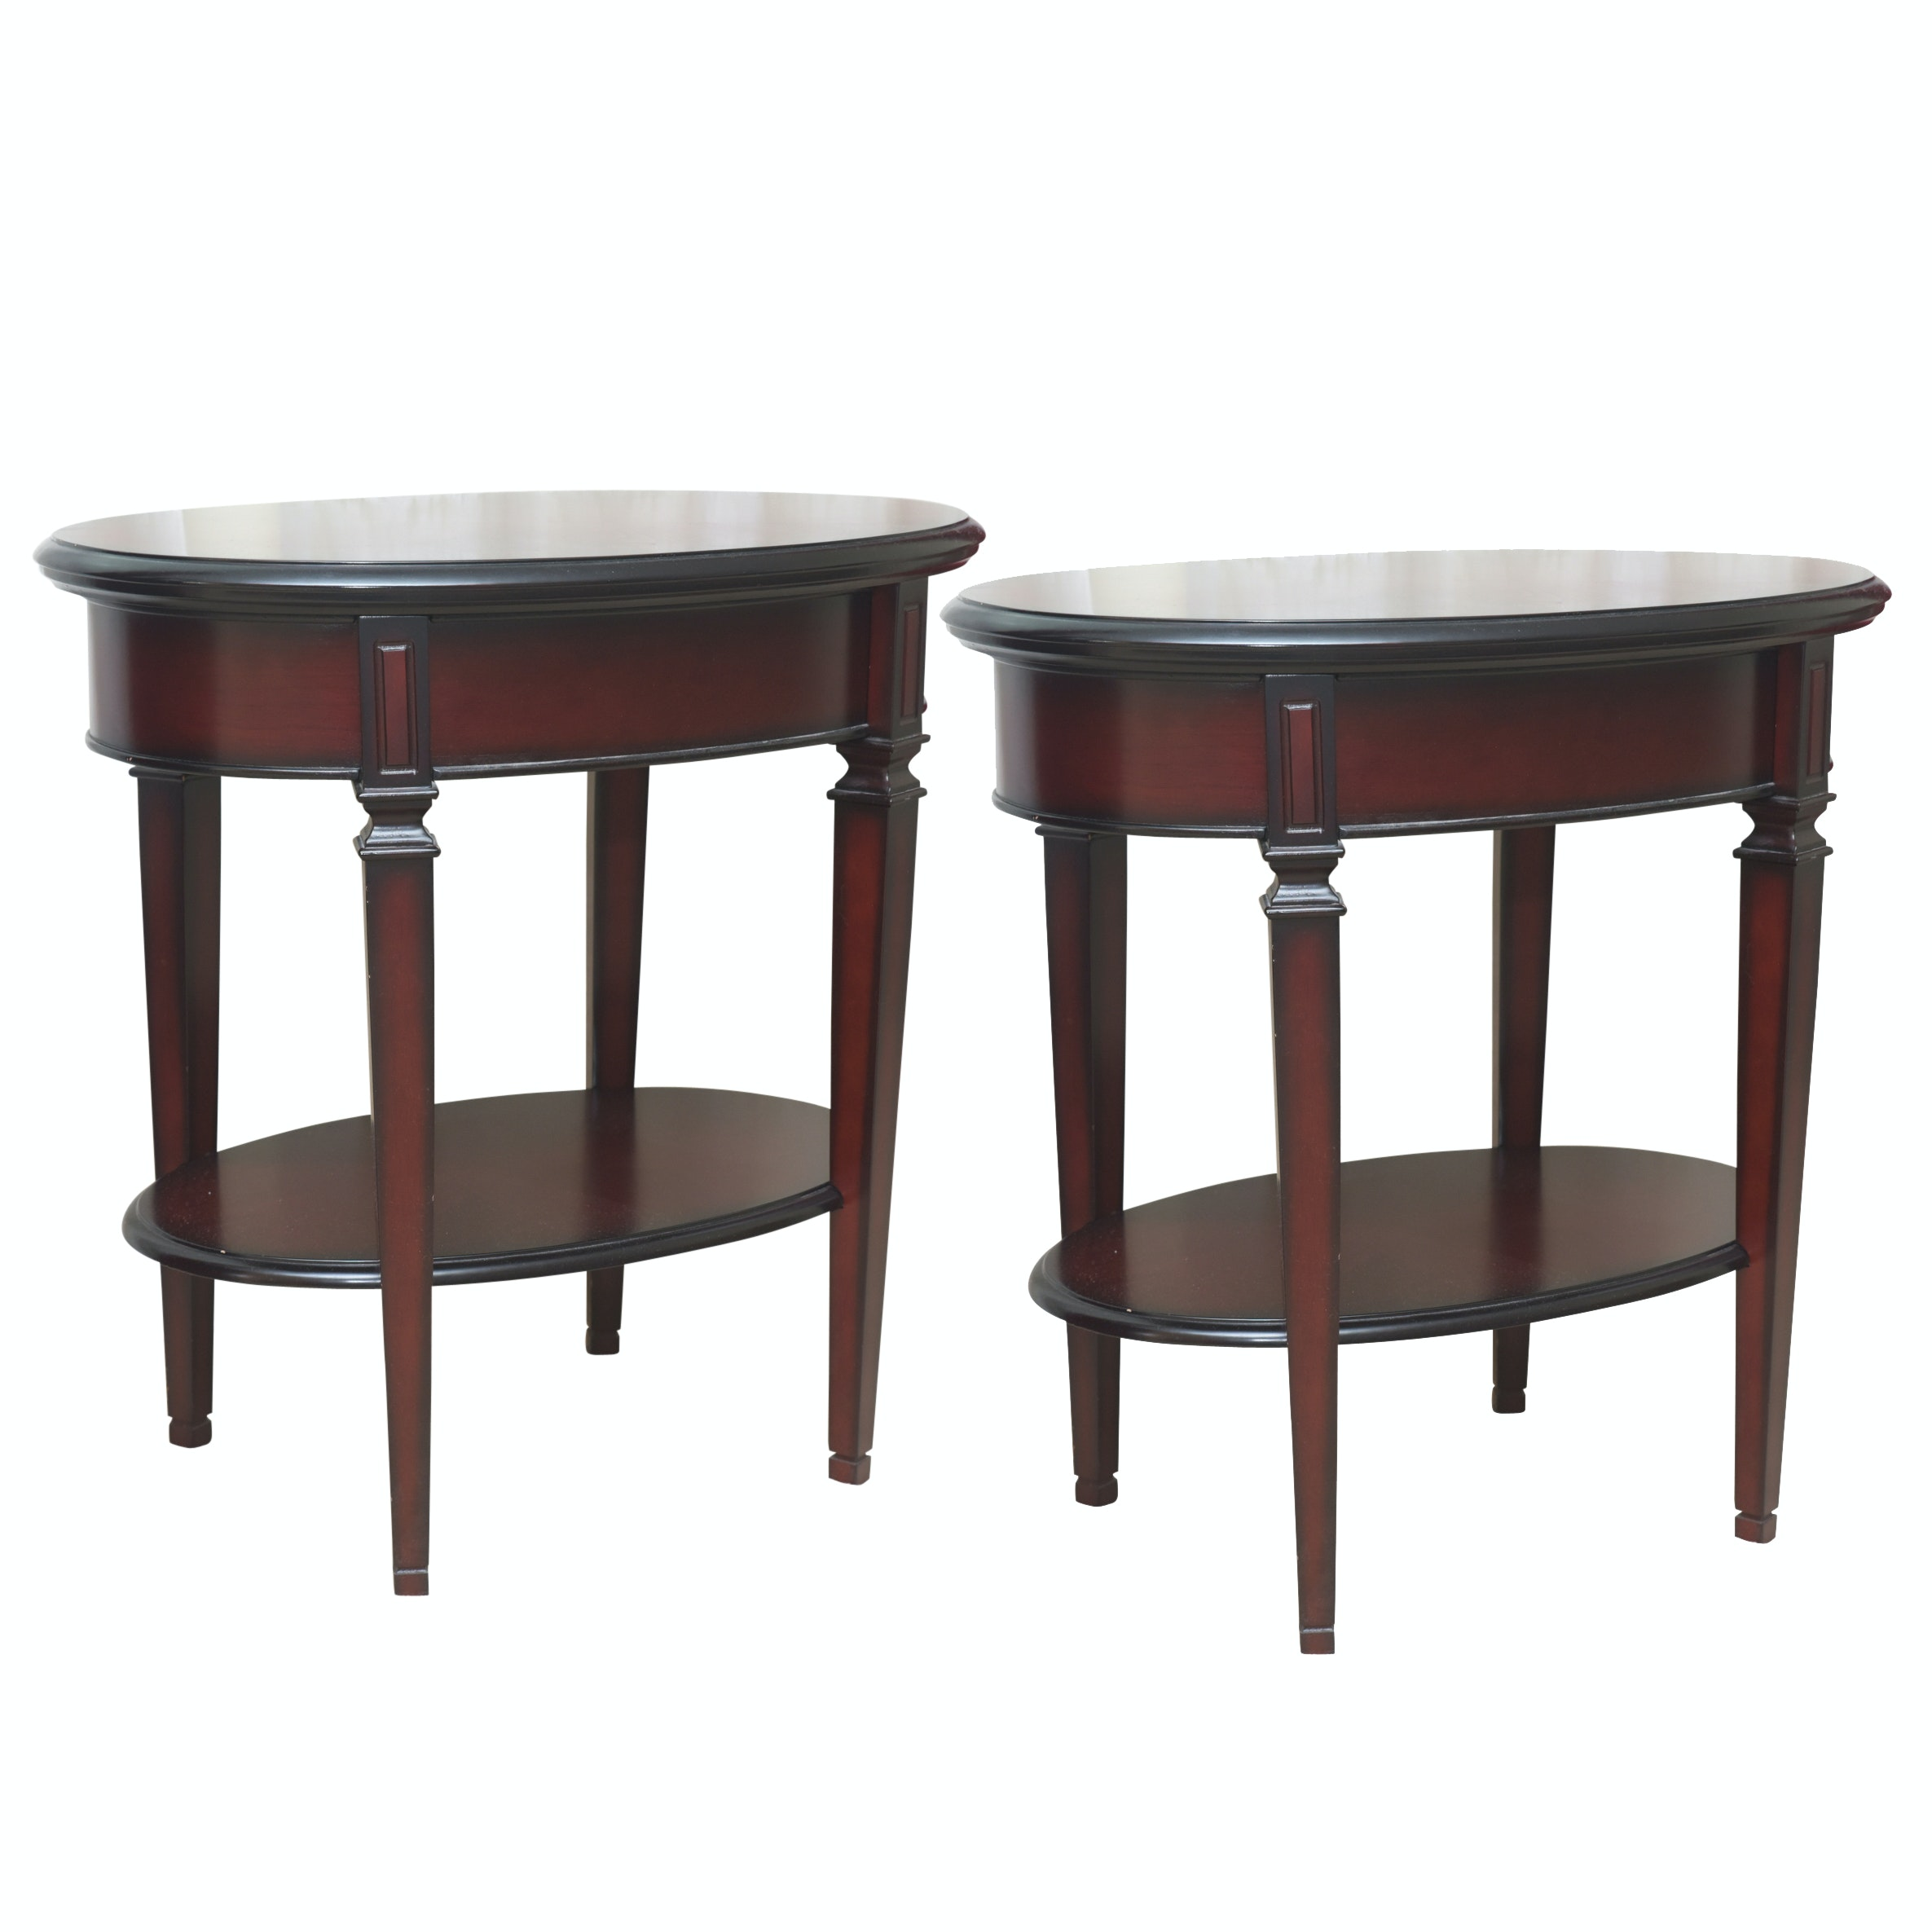 Mahogany Two-Tier Accent Tables by The Bombay Company